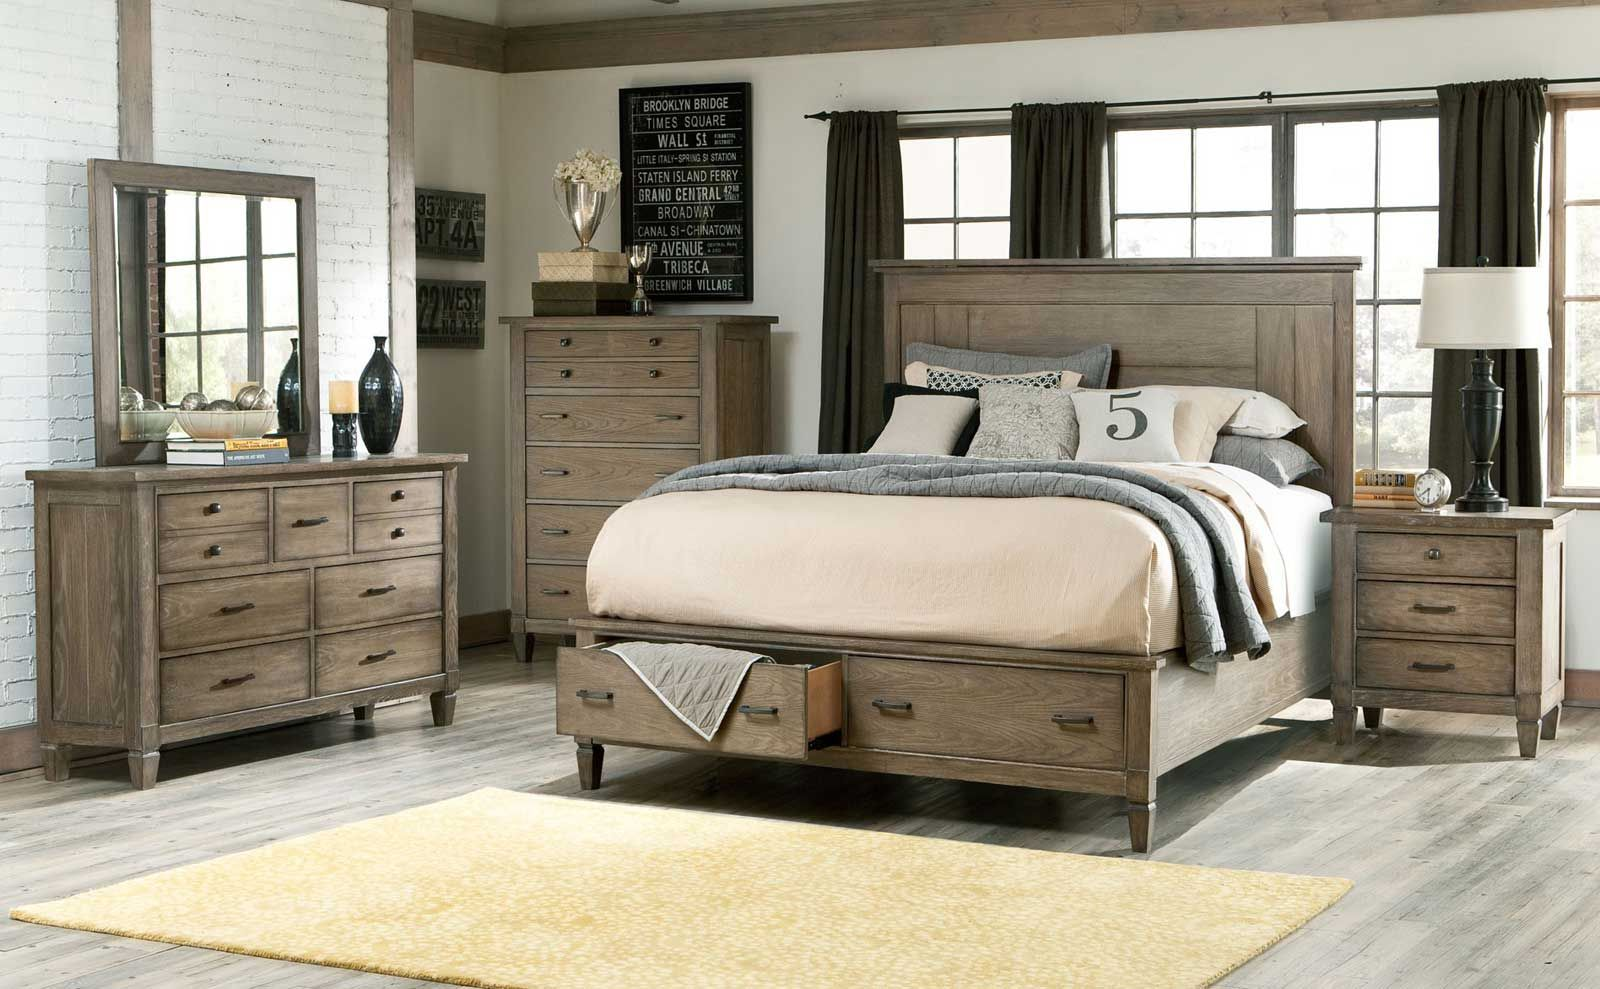 King Size Modern Bedroom Sets Image Result For Wood King Size Bedroom Sets Farm House Master